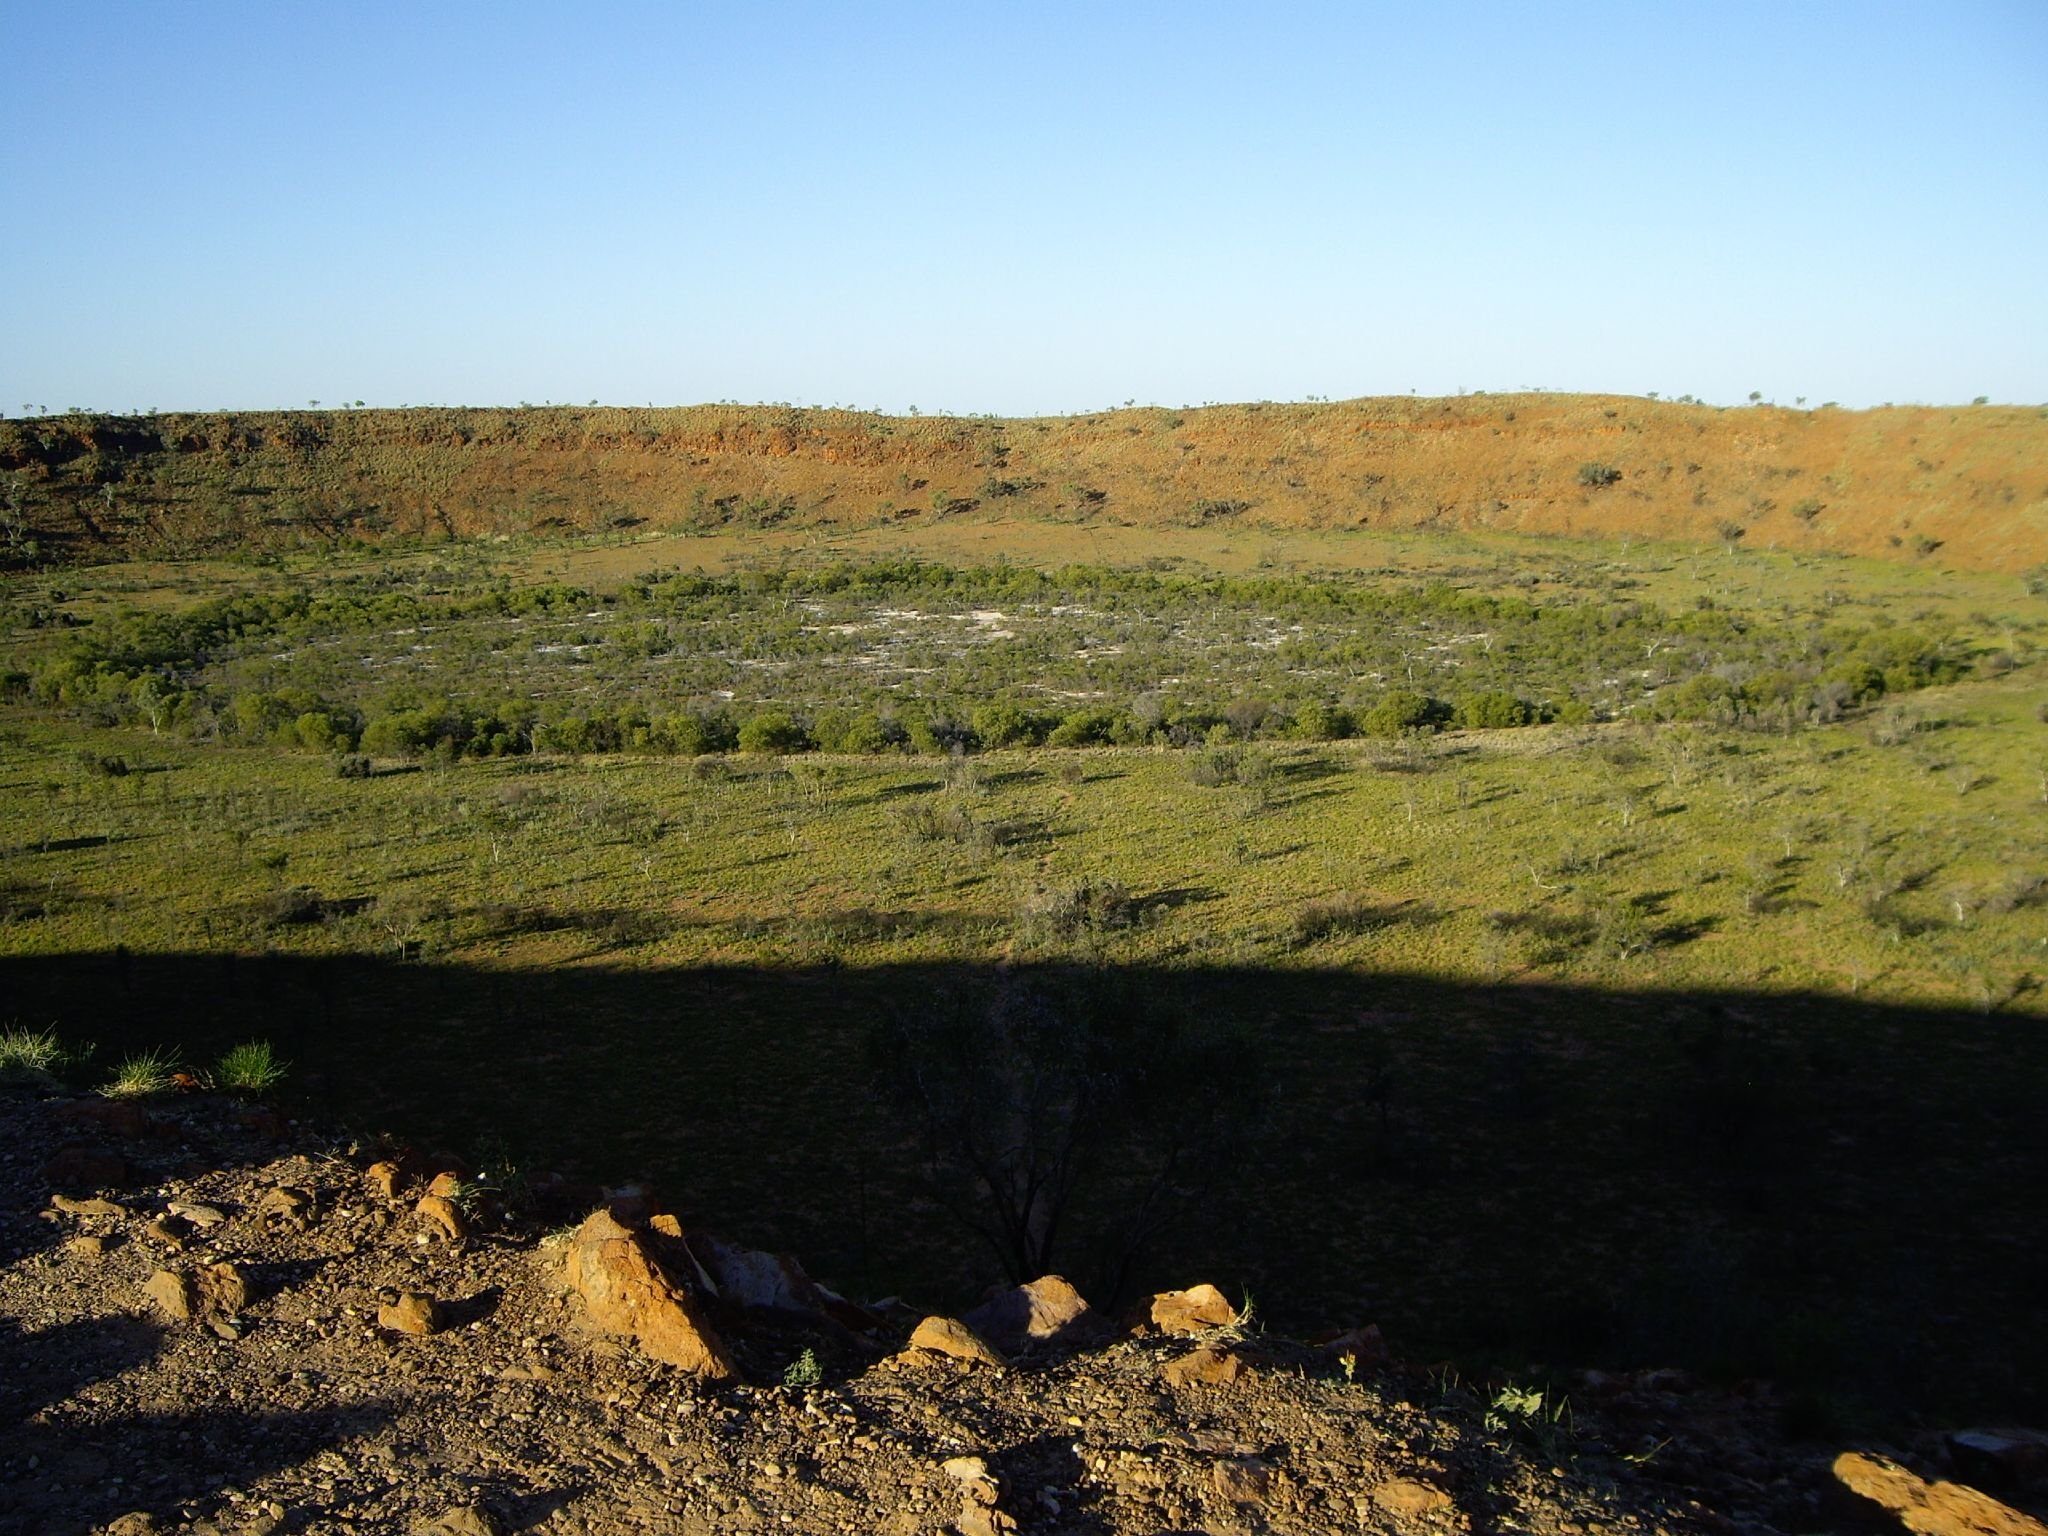 the origin and history of meteor crater Actually, several native american tribes venerated pieces and fragments of the canyon diablo meteorite, a giant iron meteorite that excavated arizona's famous meteor crater upon its impact about 50,000 years ago.